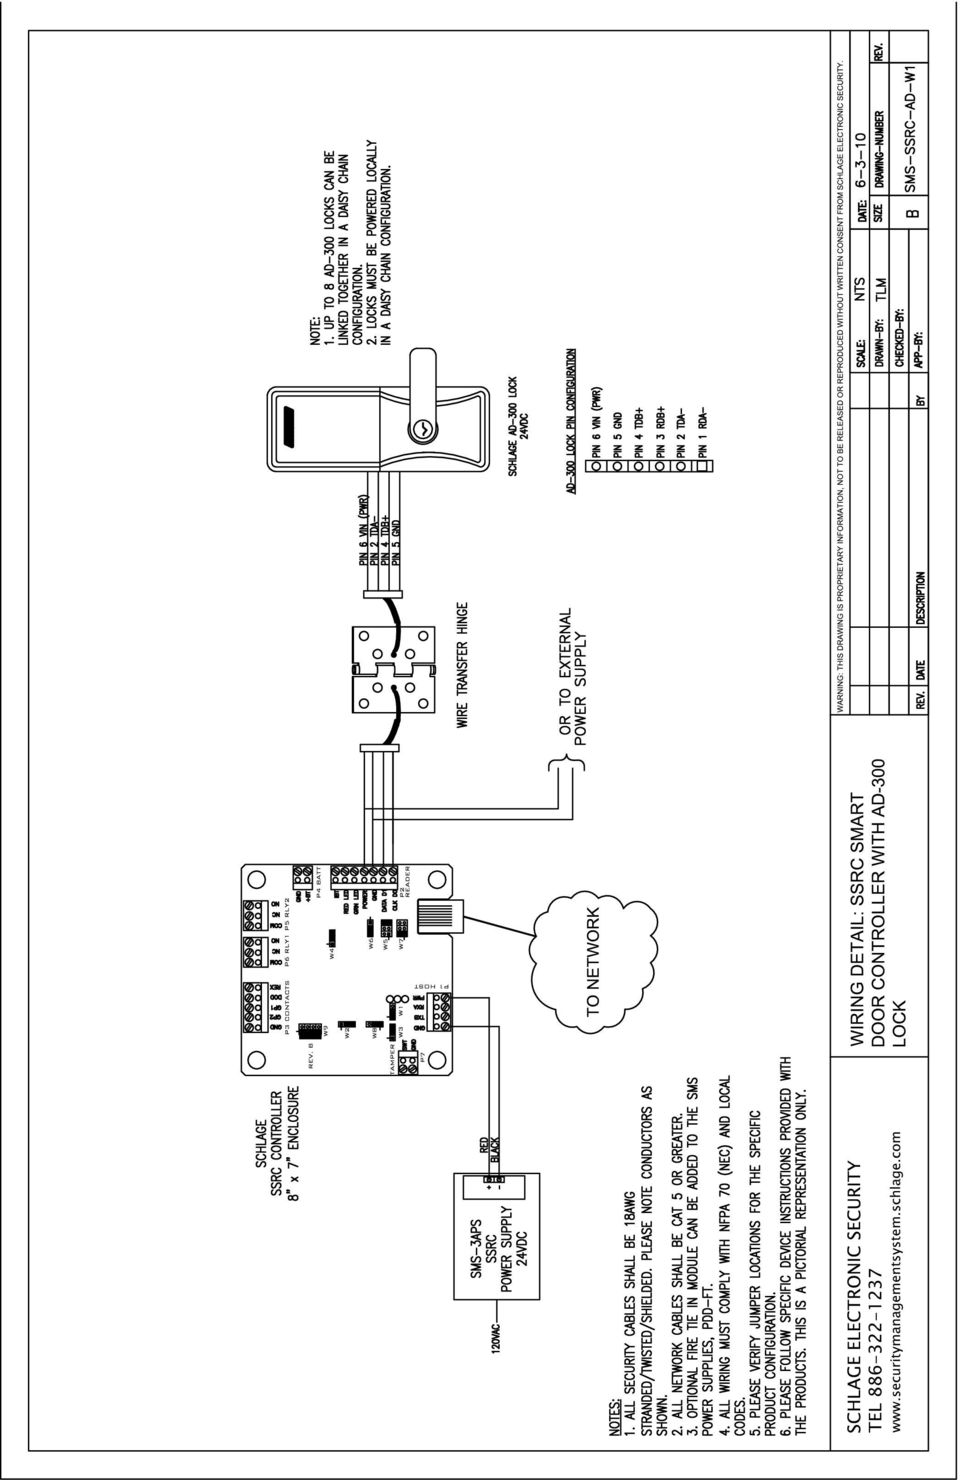 hight resolution of schlage series 300 wiring diagram wiring diagrams scematic schlage mortise wiring diagram schlage wiring diagram